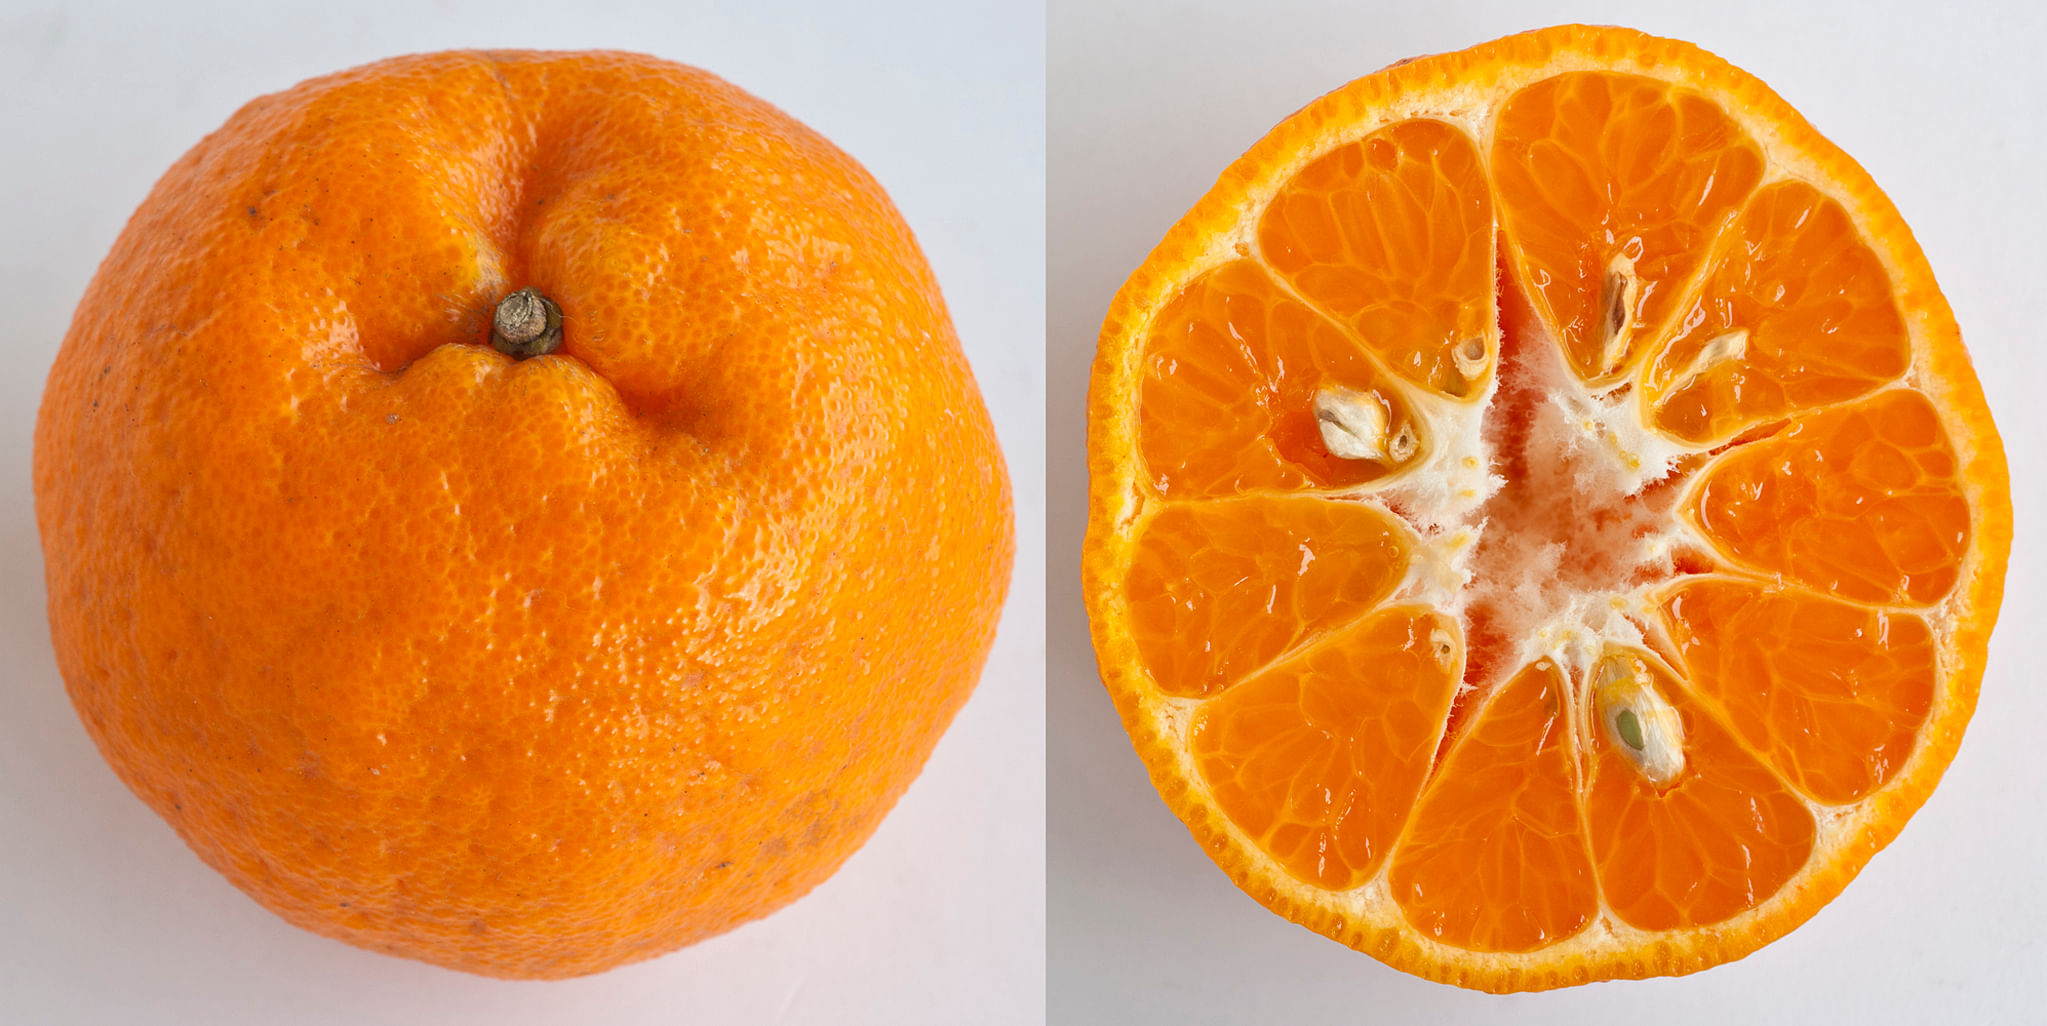 Mandarin Orange Images